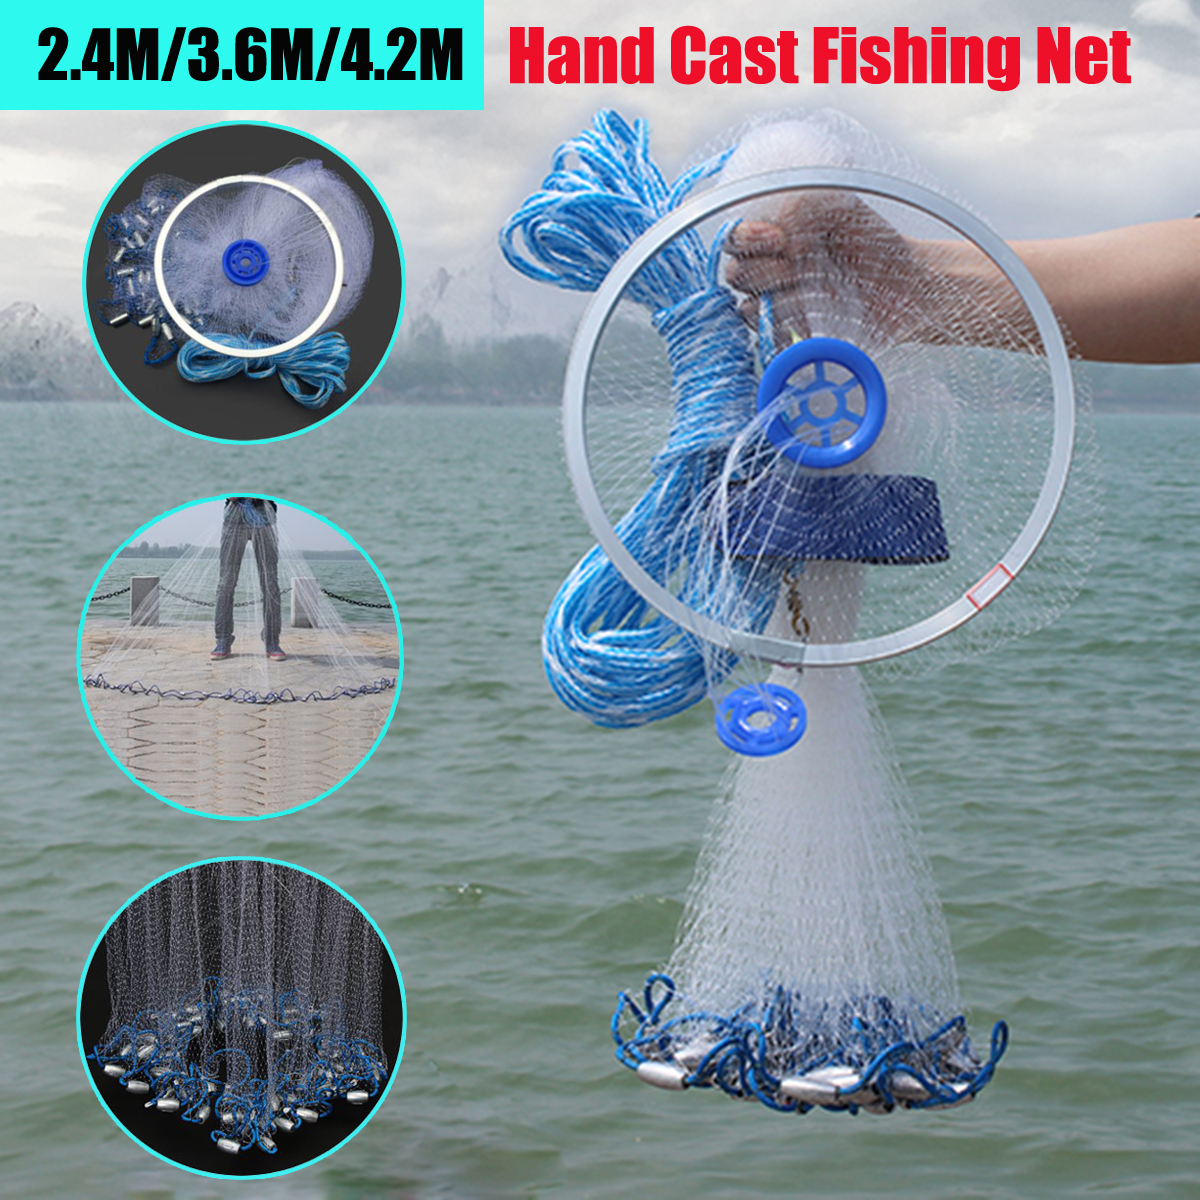 Bobing New Arrival 3.6m/2.4m Big Hand Cast Fishing Nylon Net Gill Spin Network Bait Net W/ Sinker Carp Fishing Tackle Accessory Various Styles